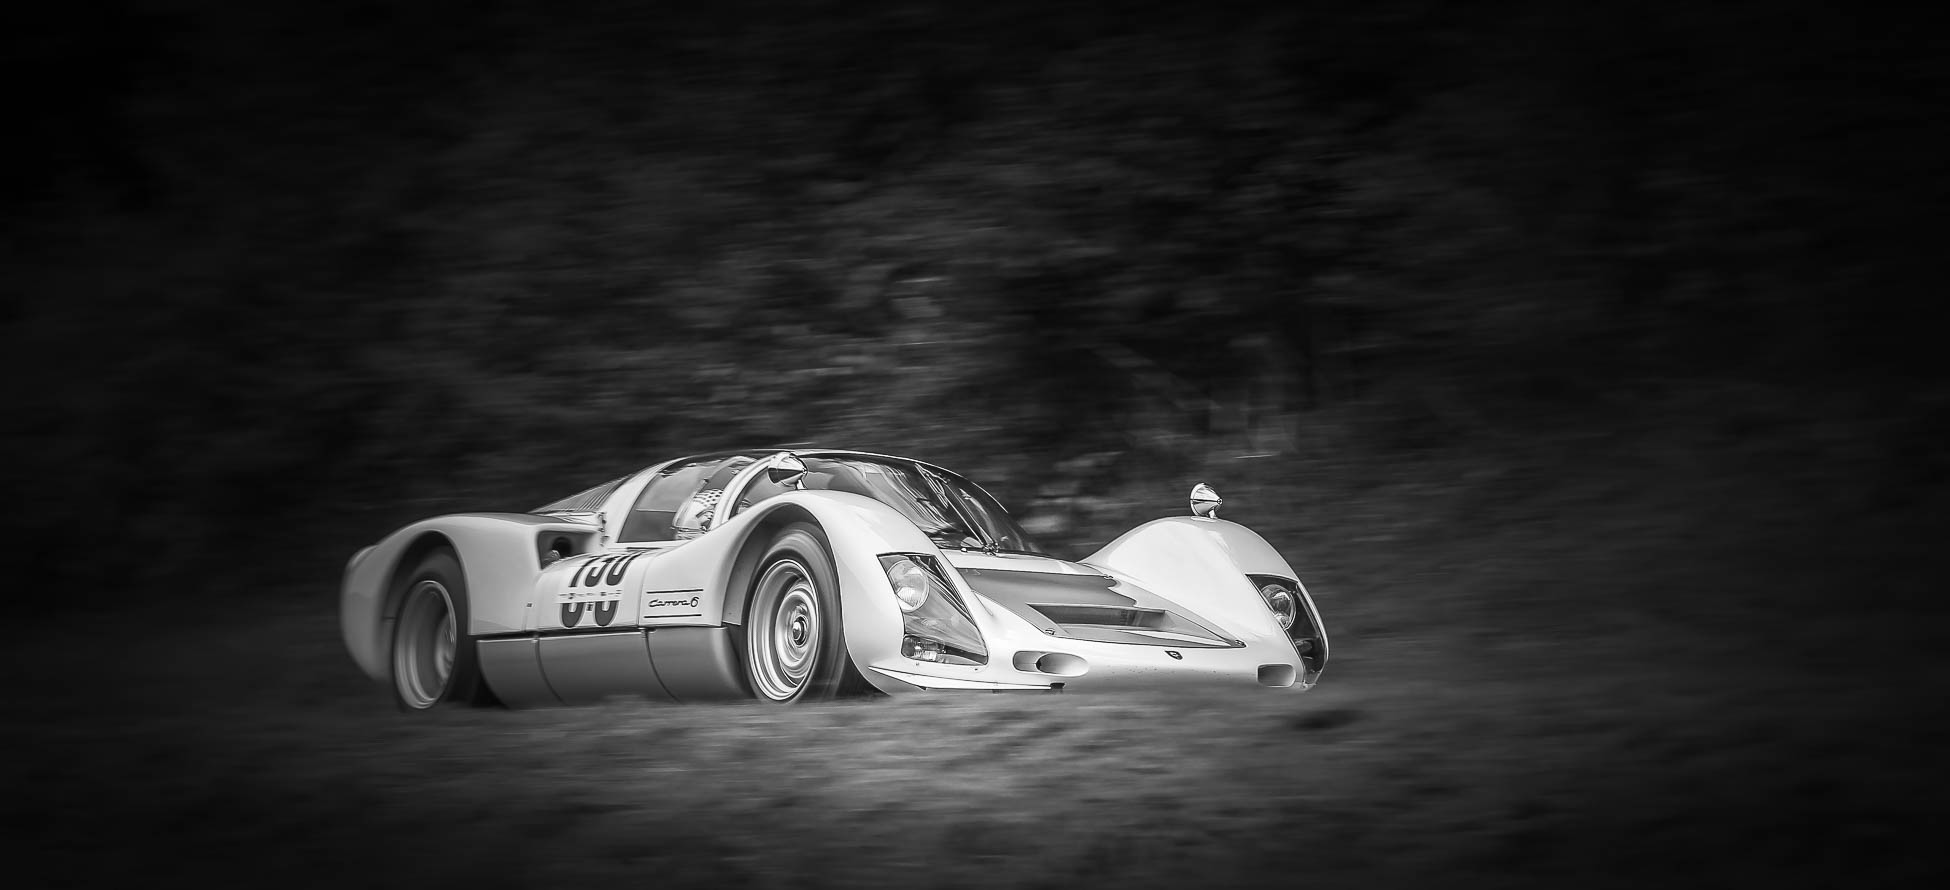 Porsche 906 - Robert Jung - black&white